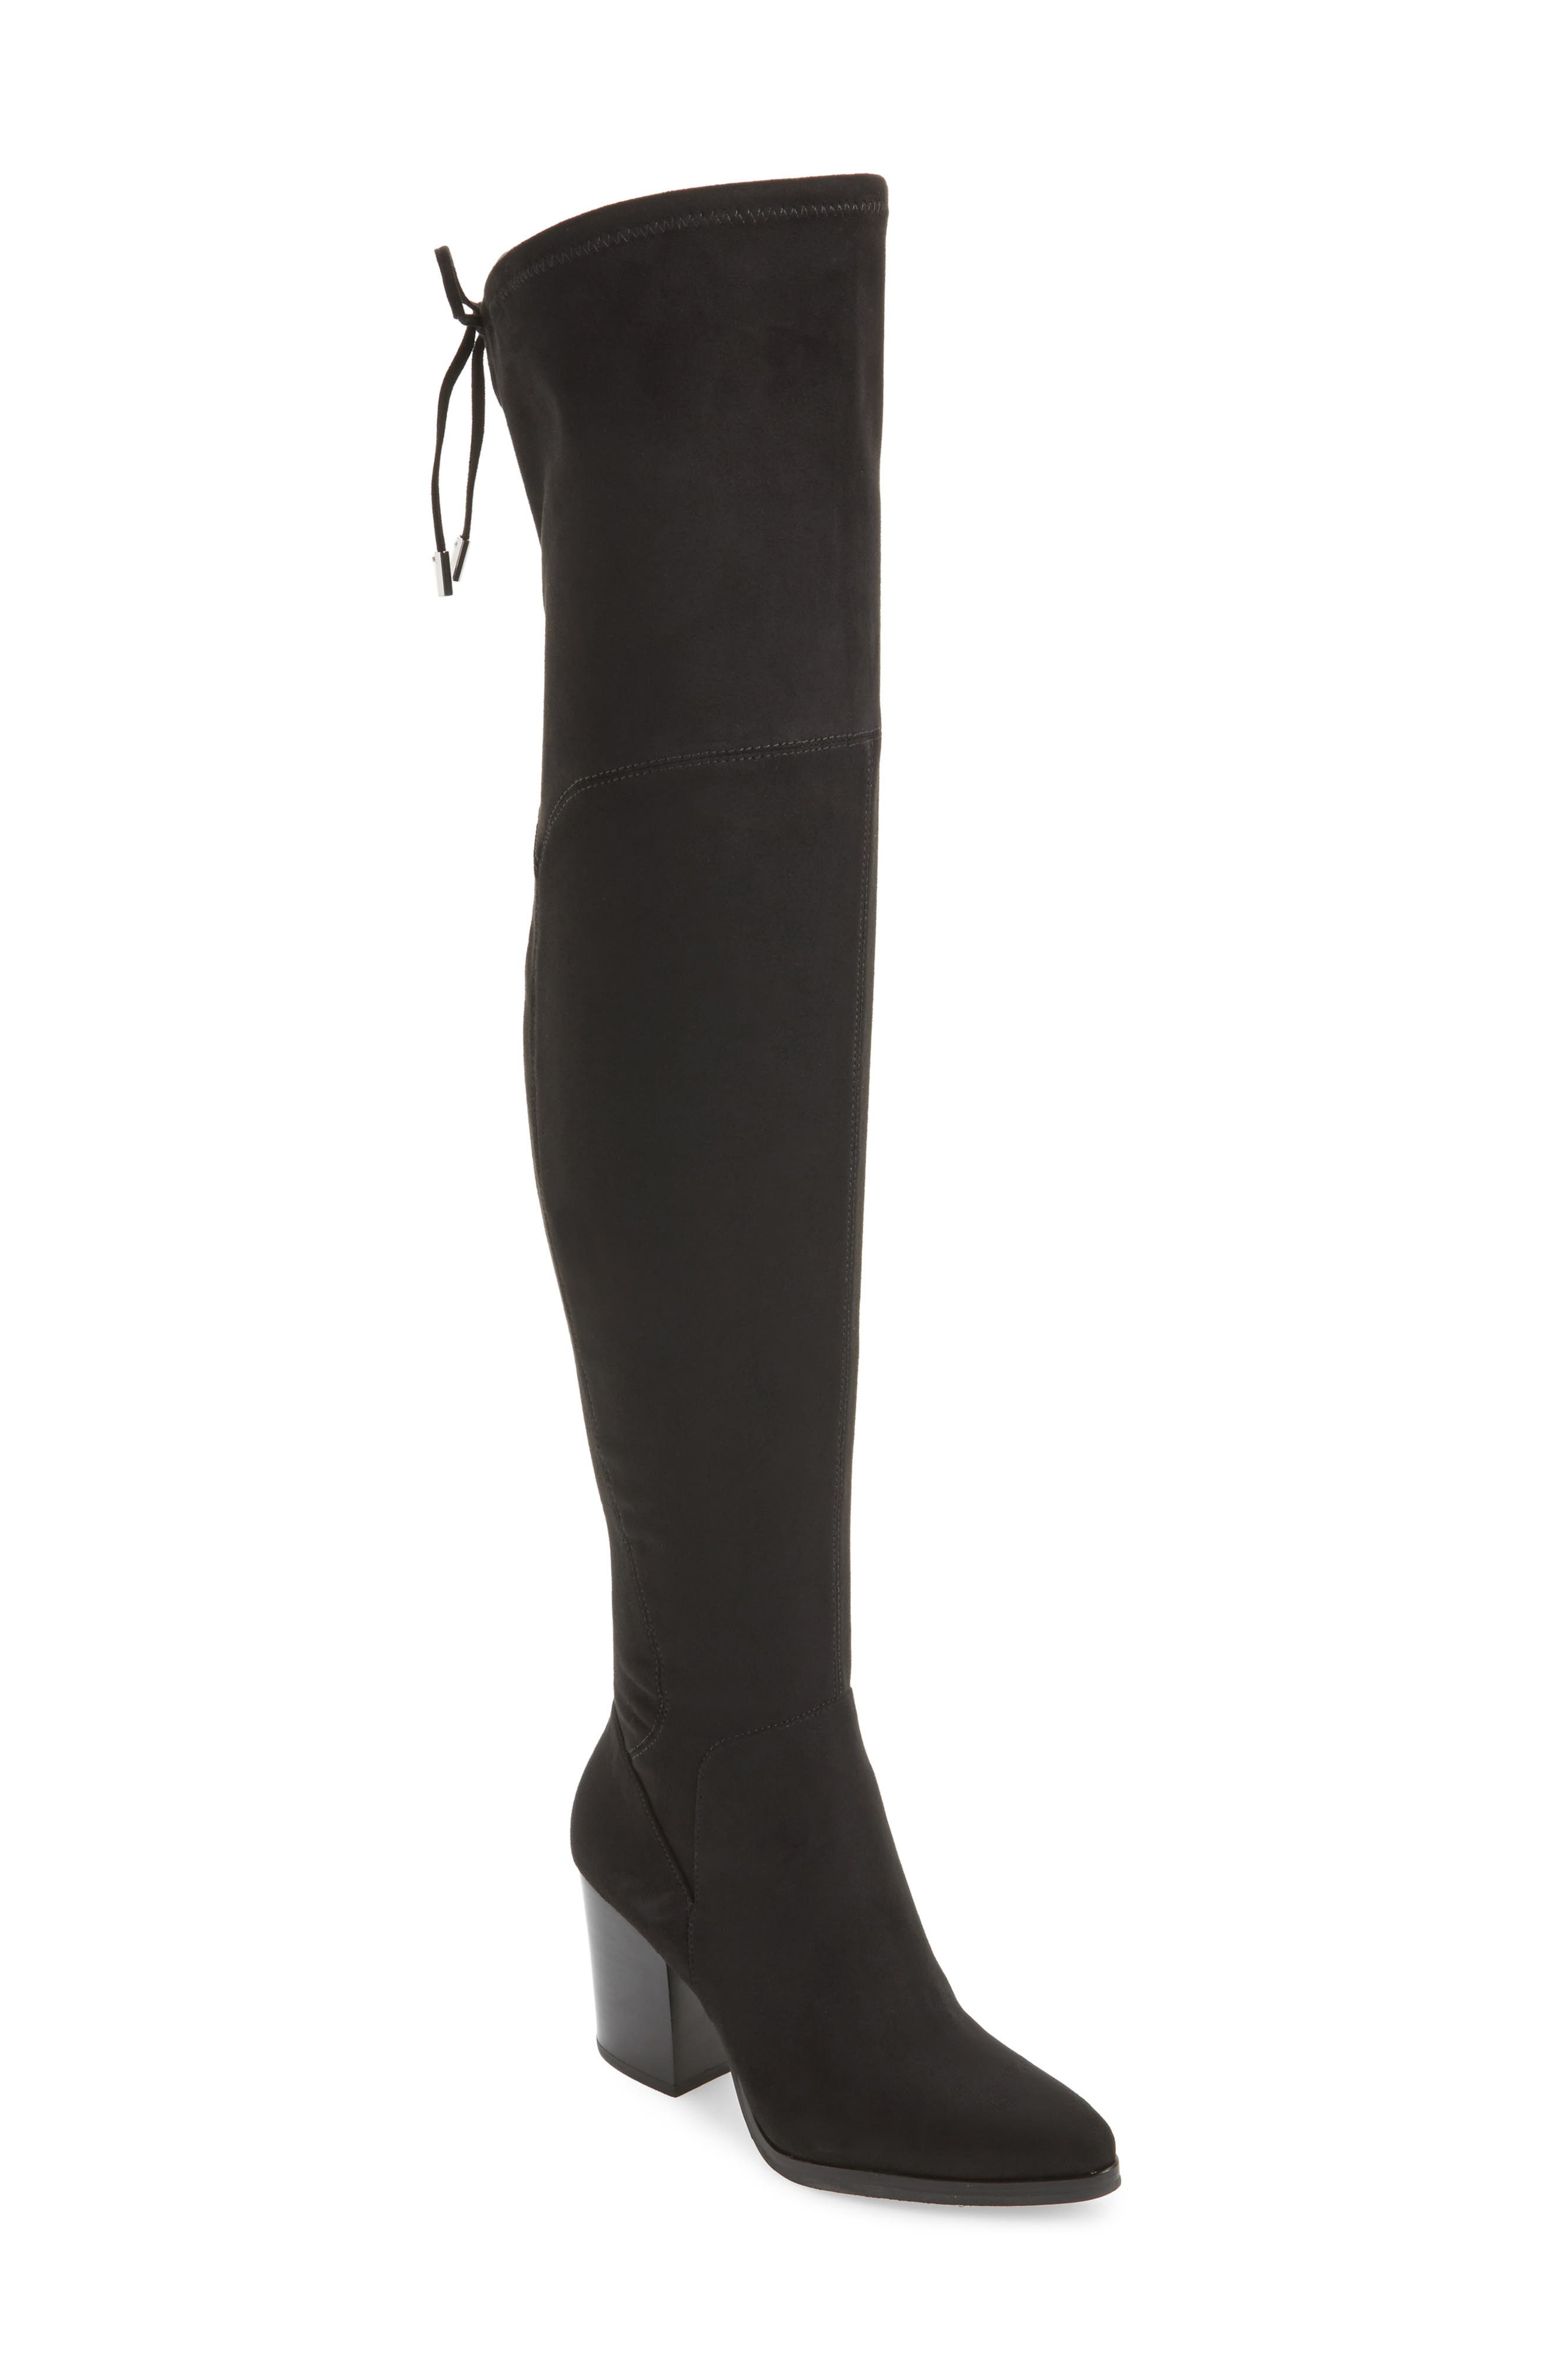 Adora Over the Knee Boot,                             Main thumbnail 1, color,                             001